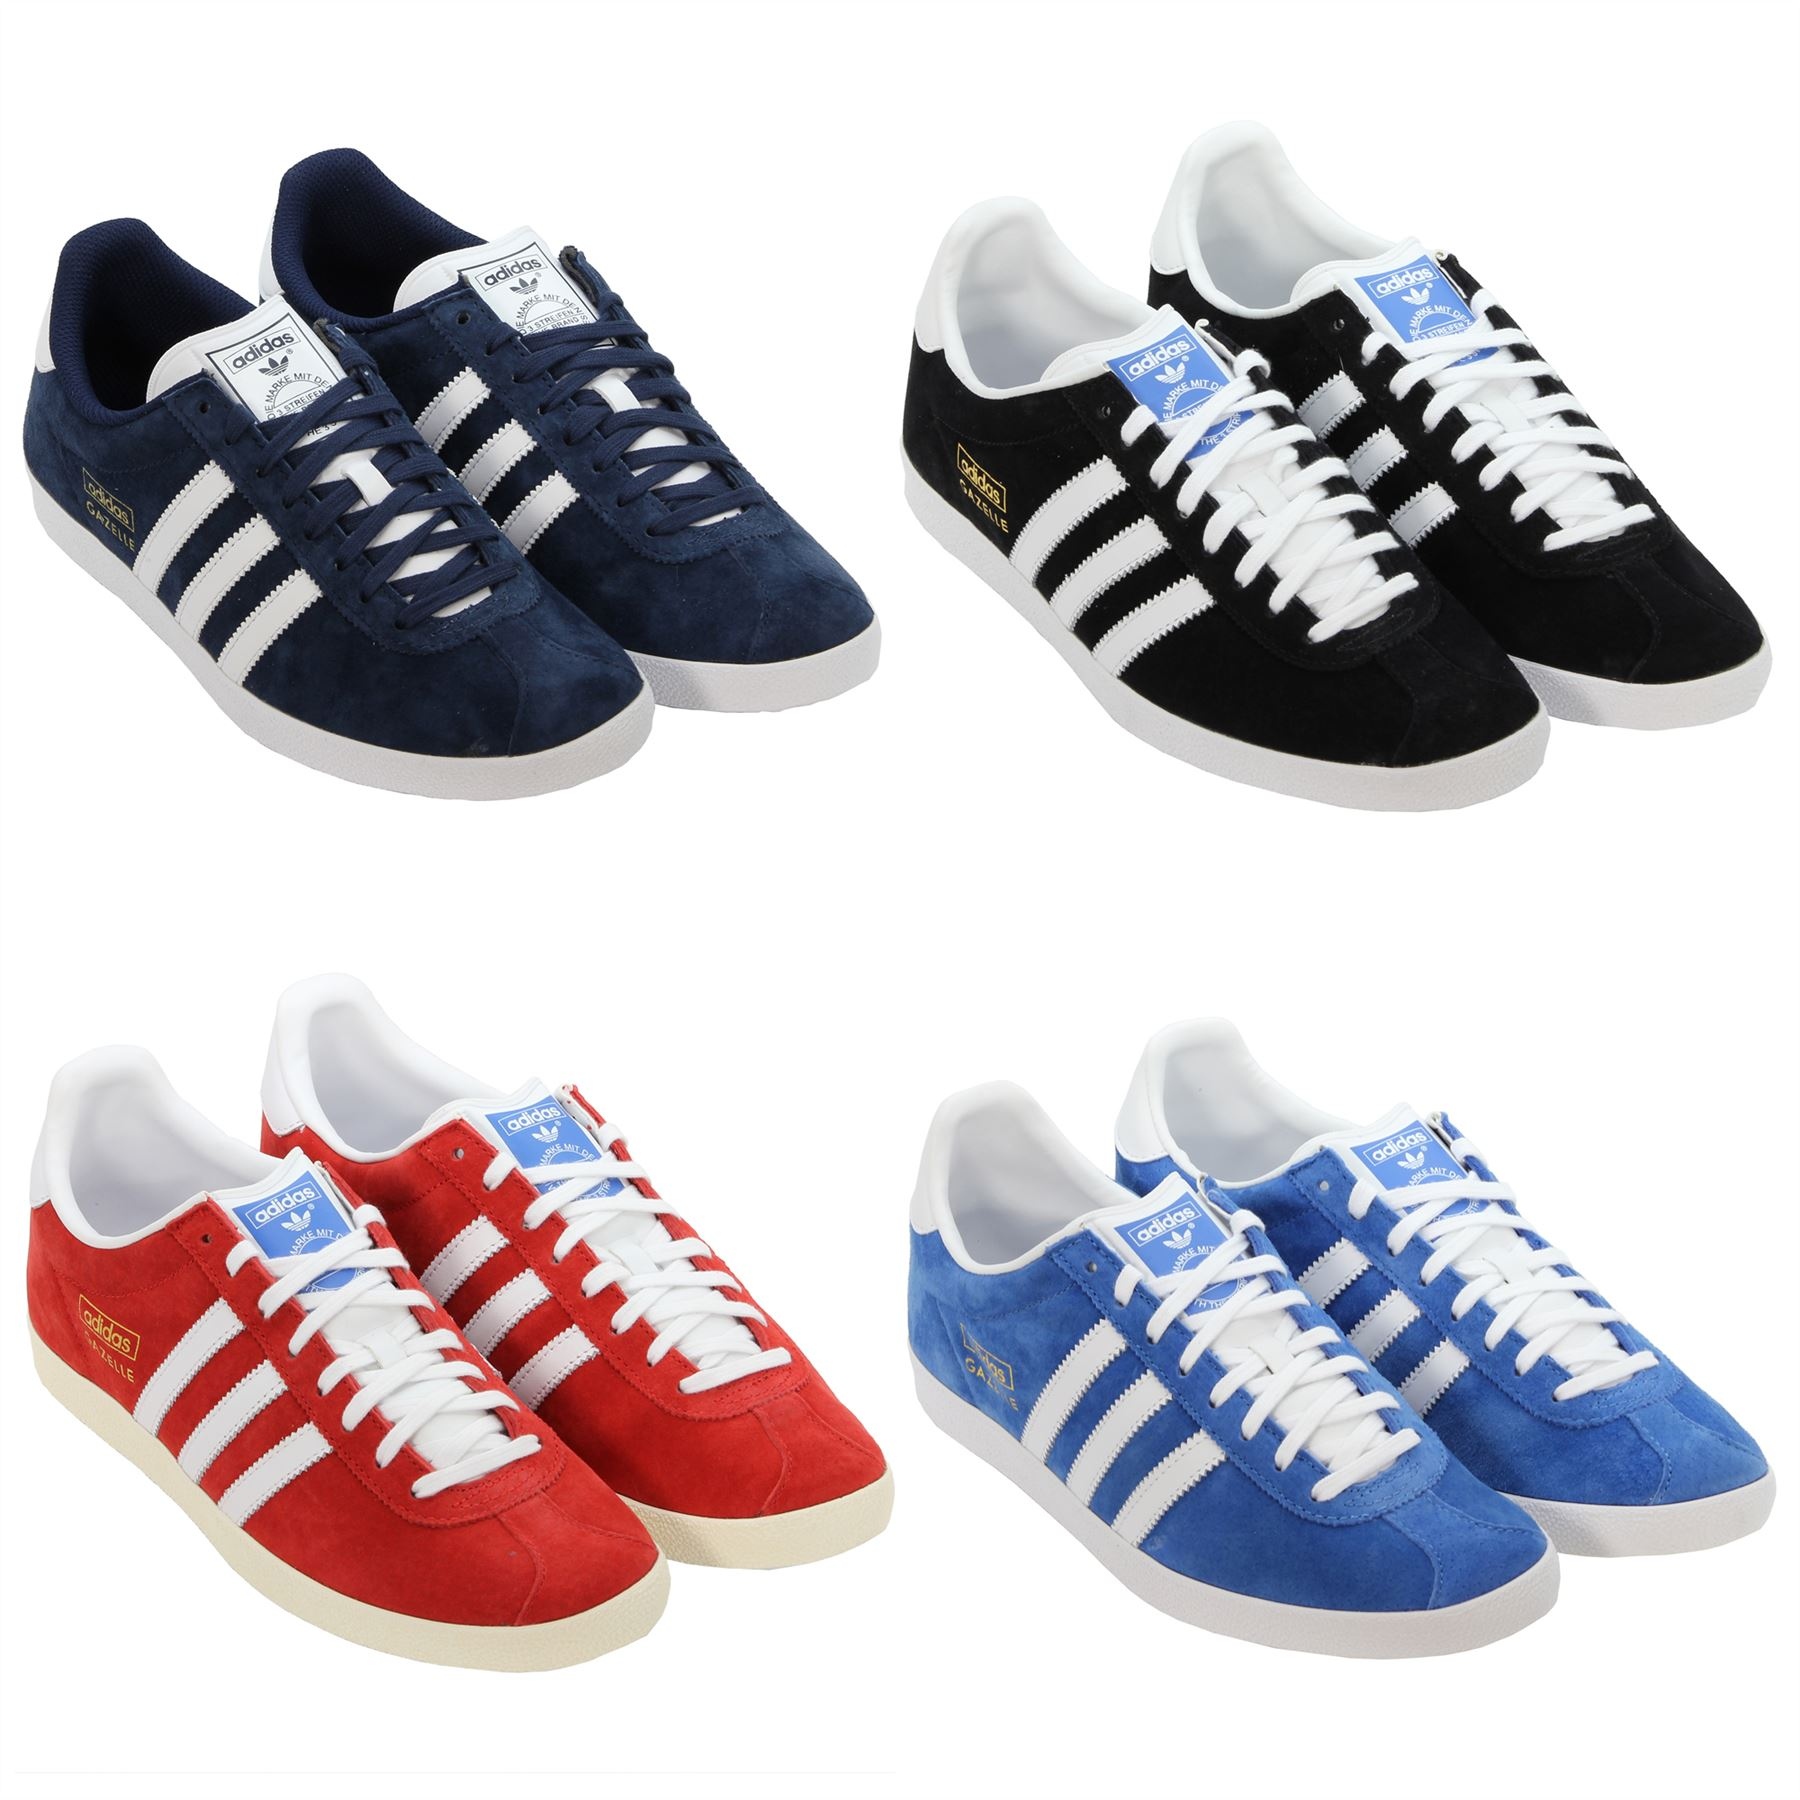 251909a463257b adidas ORIGINALS MEN S GAZELLE TRAINERS SIZE 7 8 9 10 11 12 SUEDE LEATHER  SHOES